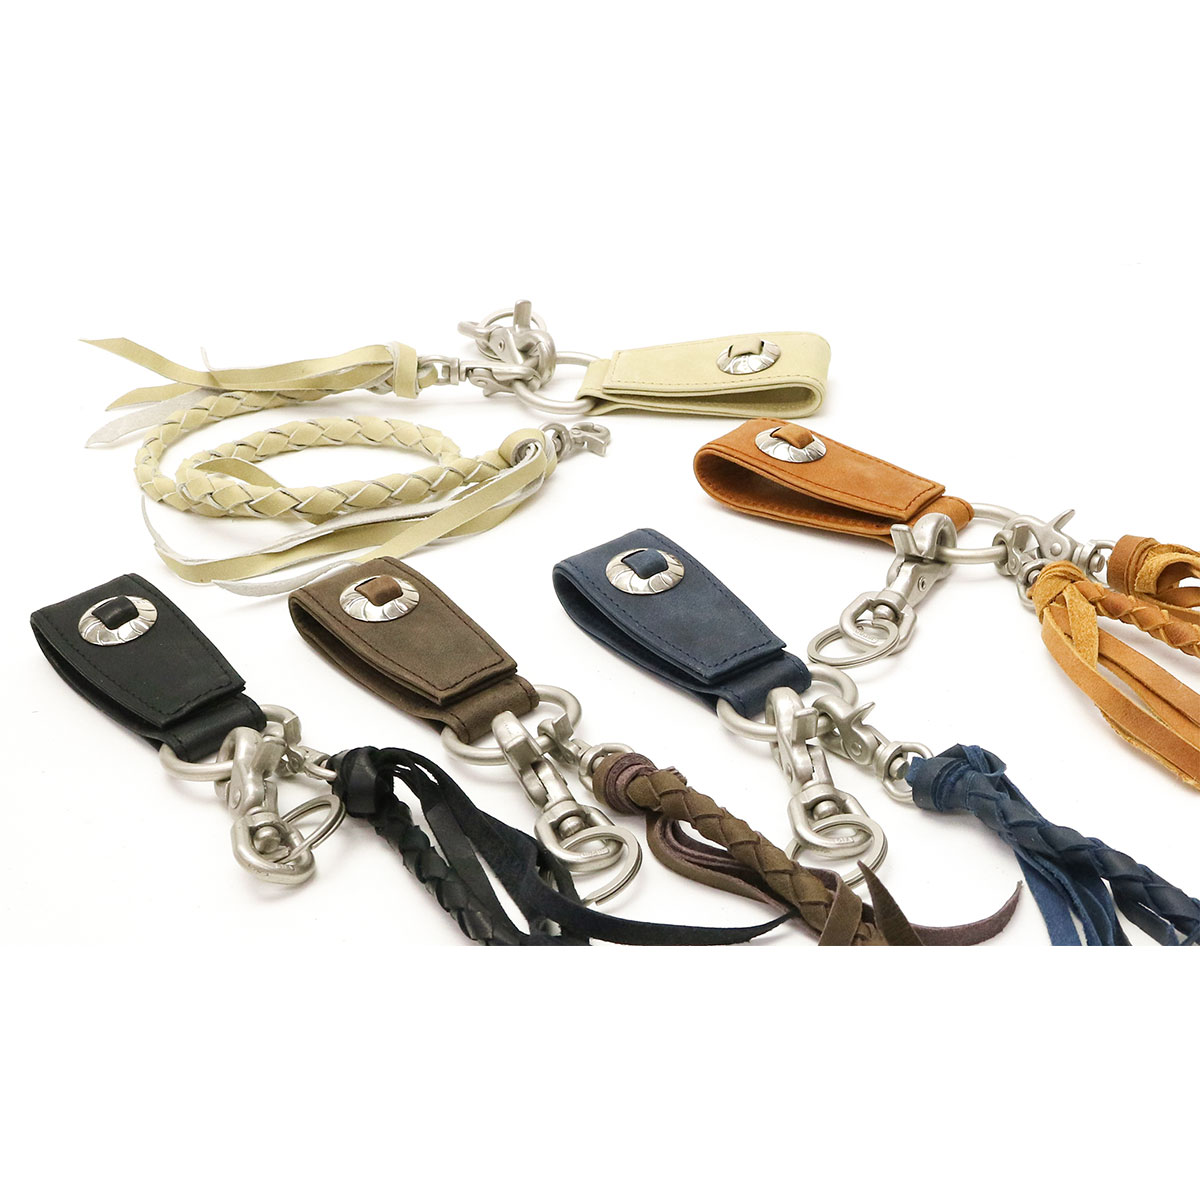 Corbo. CORBO Wallet Chain Wallet Cord CLAY Works Horse Horse Leather 8JF-9357